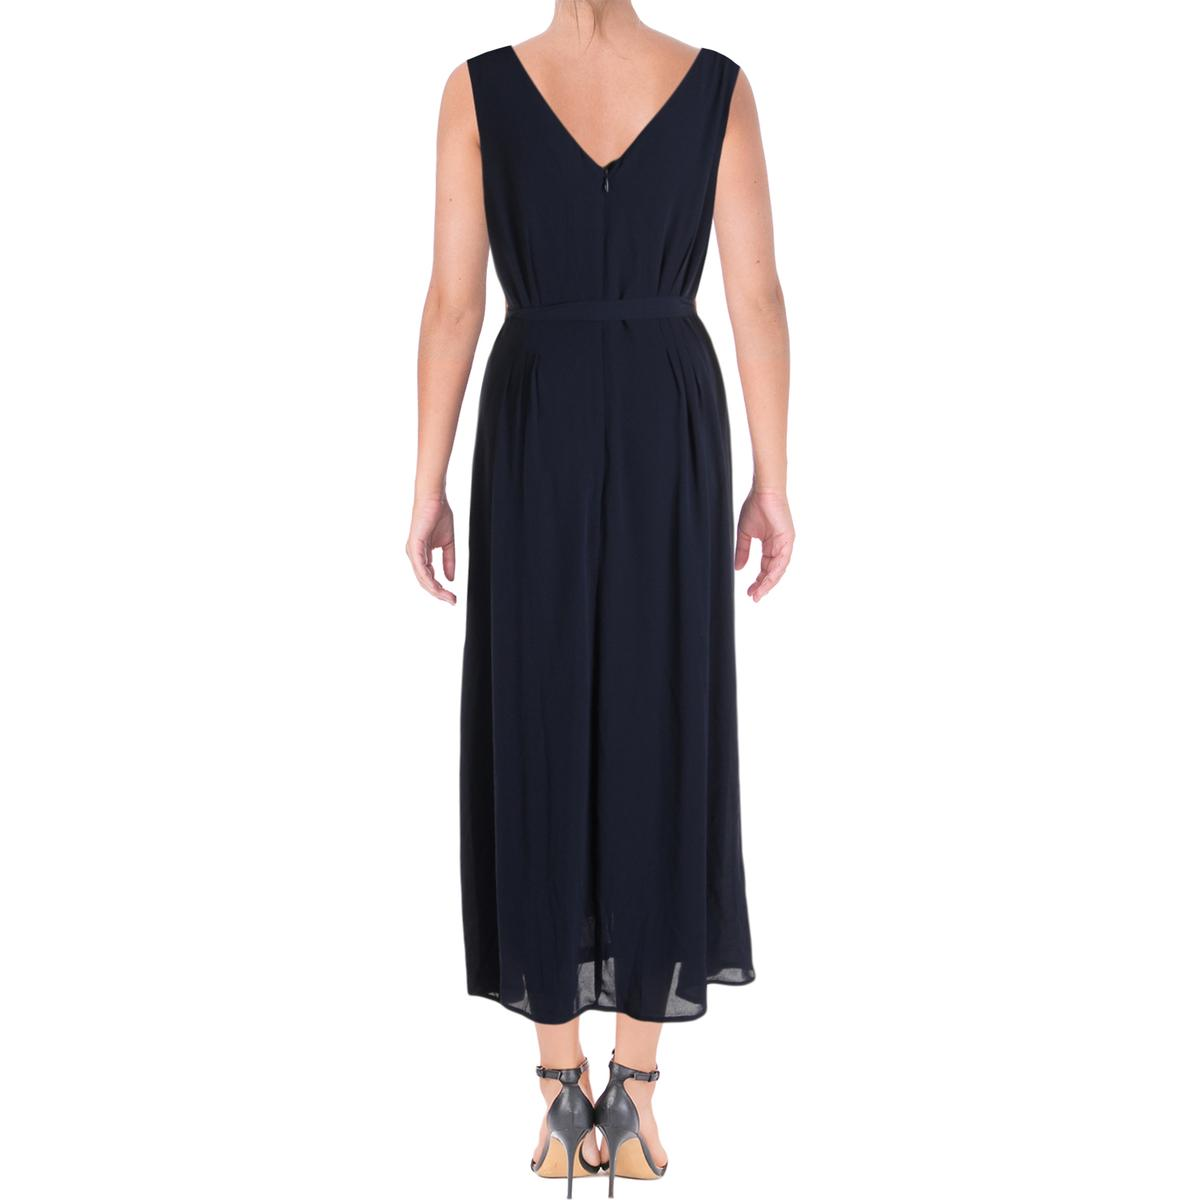 331a1fb7 Maison Jules Womens Navy Fit & Flare Knee-length Casual Dress M BHFO ...